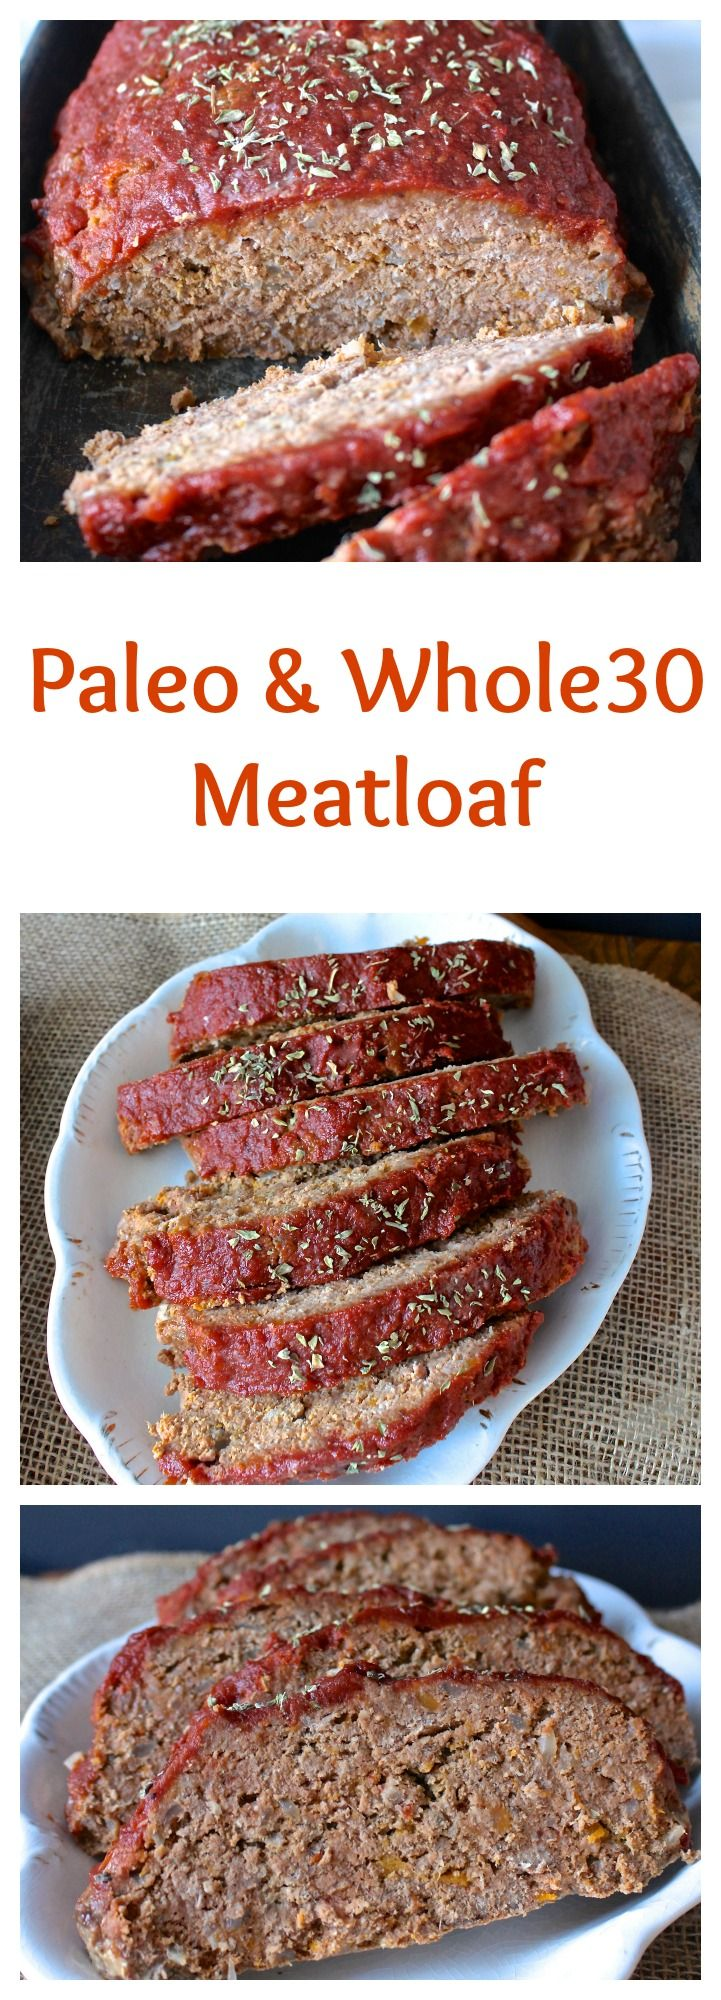 Check Out Paleo Meatloaf It 39 S So Easy To Make Paleo